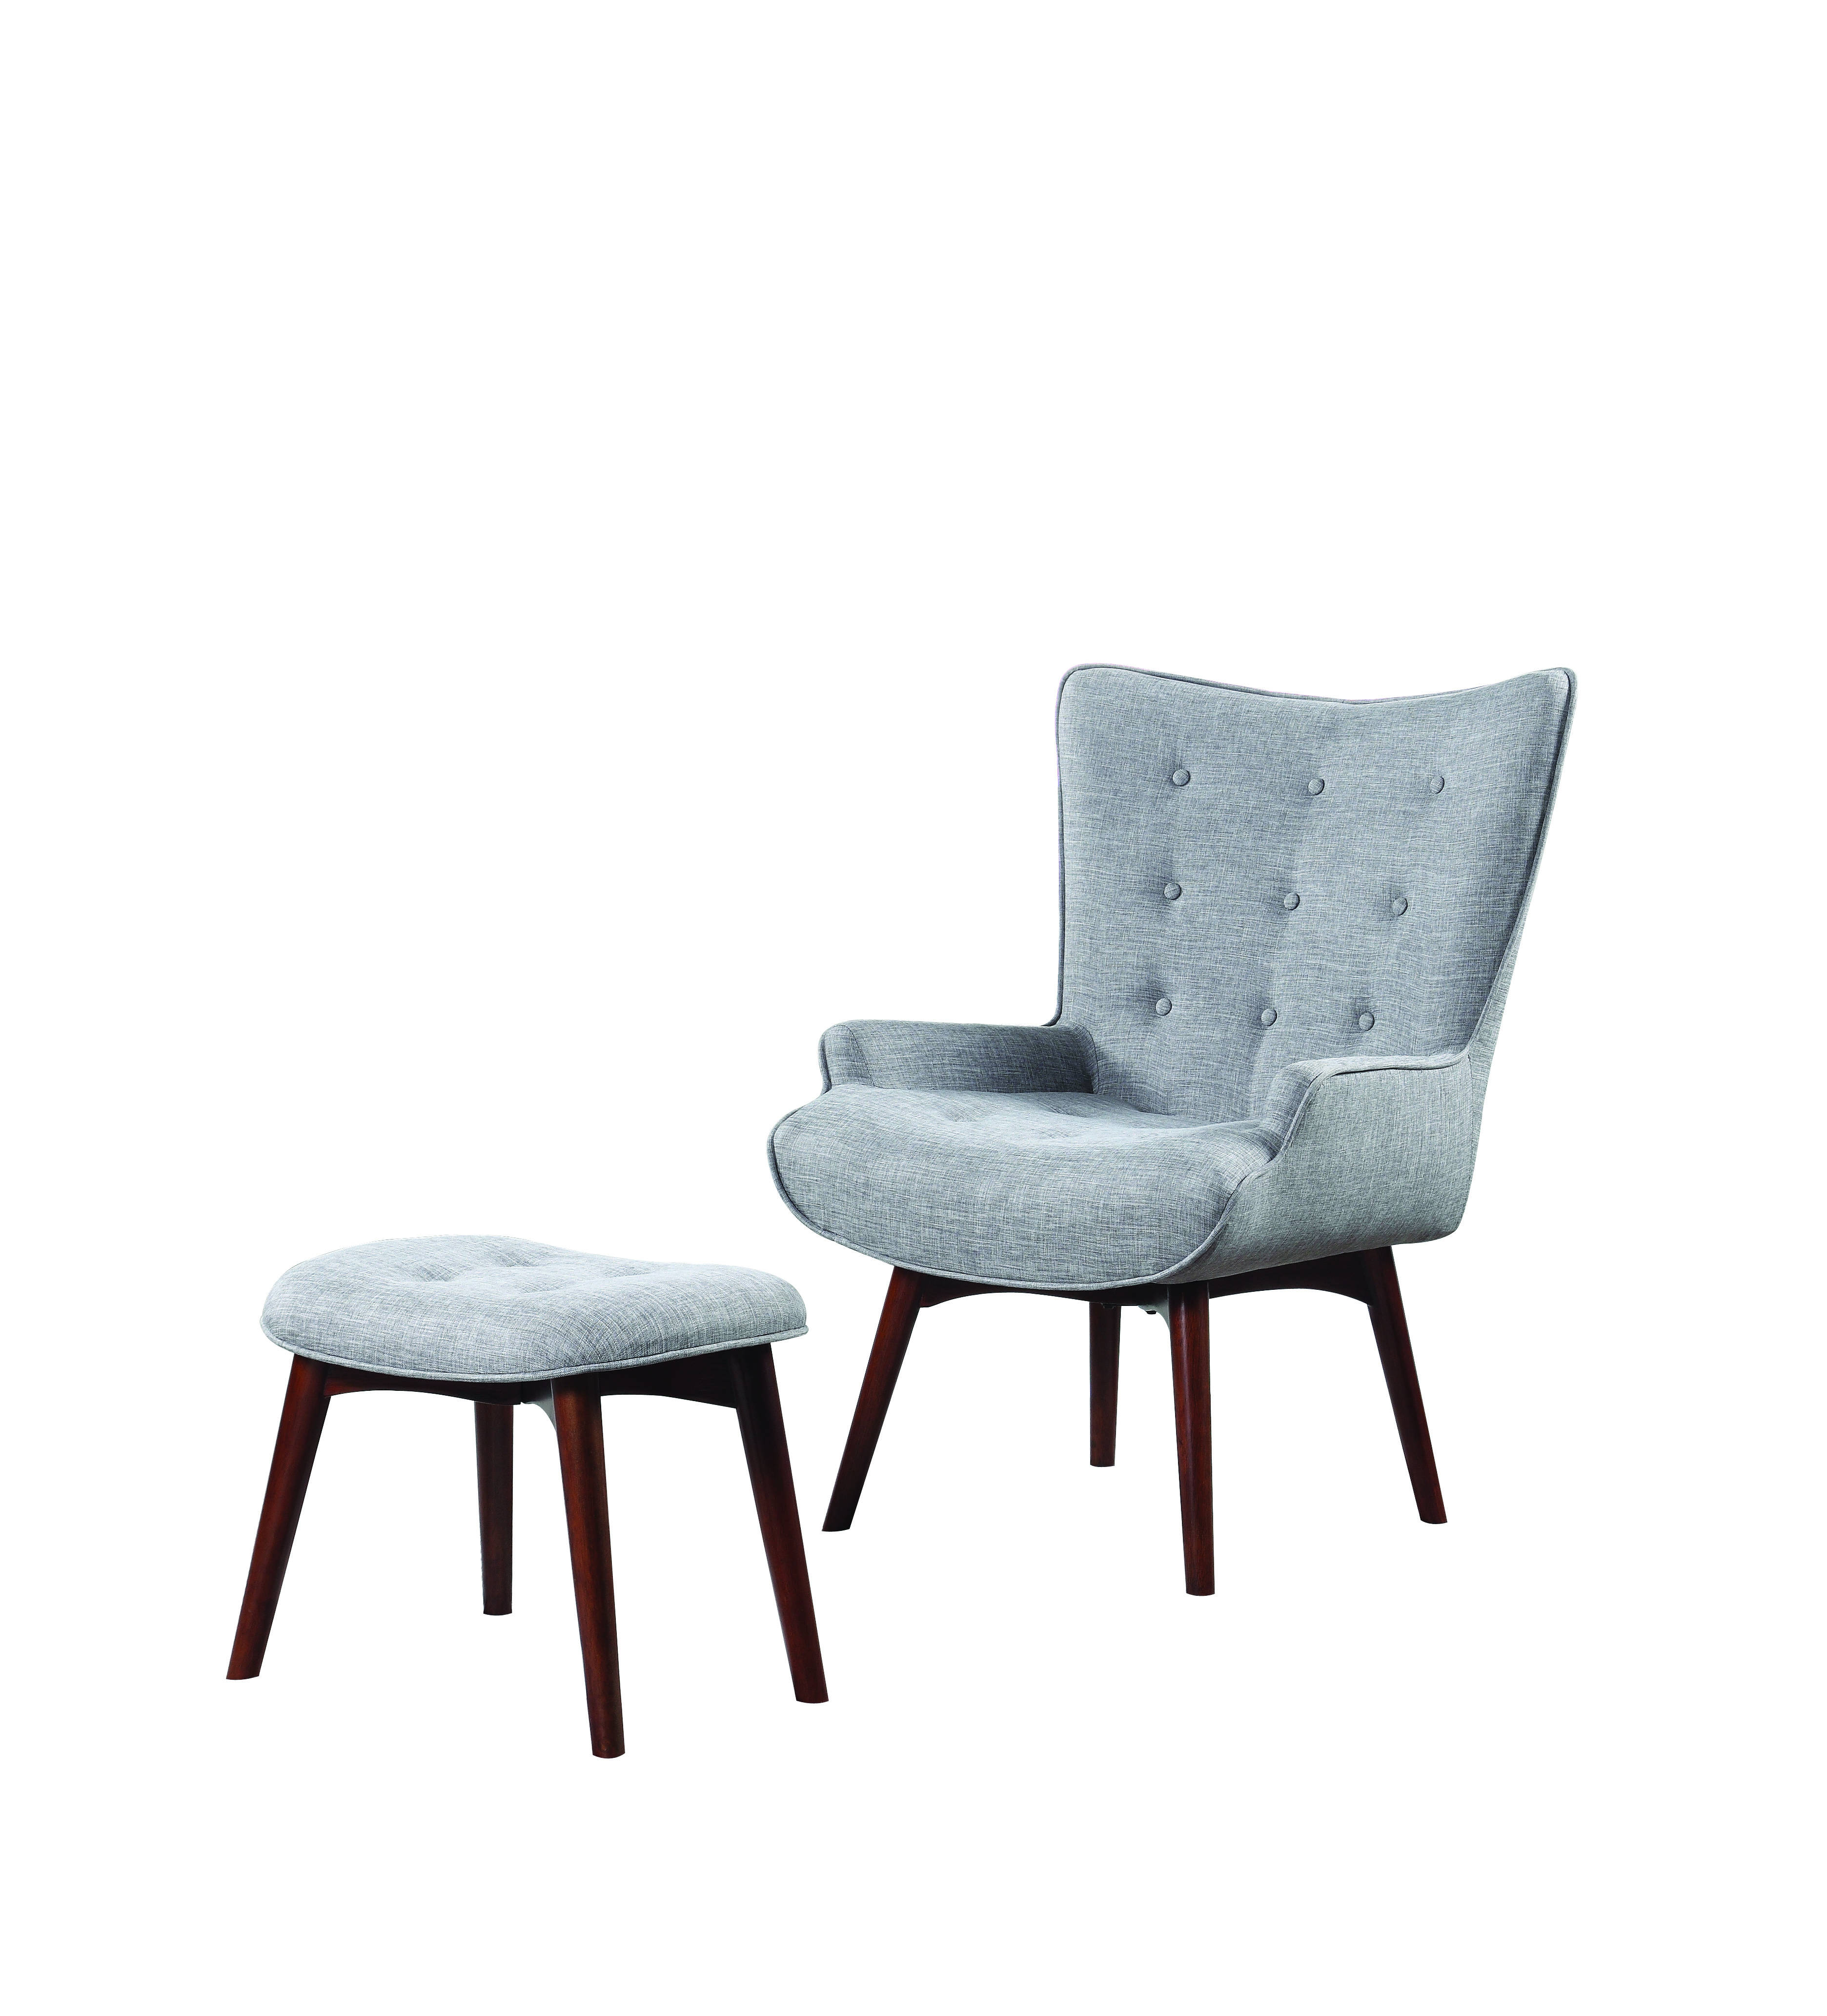 Enjoyable Coaster Furniture Grey Accent Chair With Ottoman Ncnpc Chair Design For Home Ncnpcorg